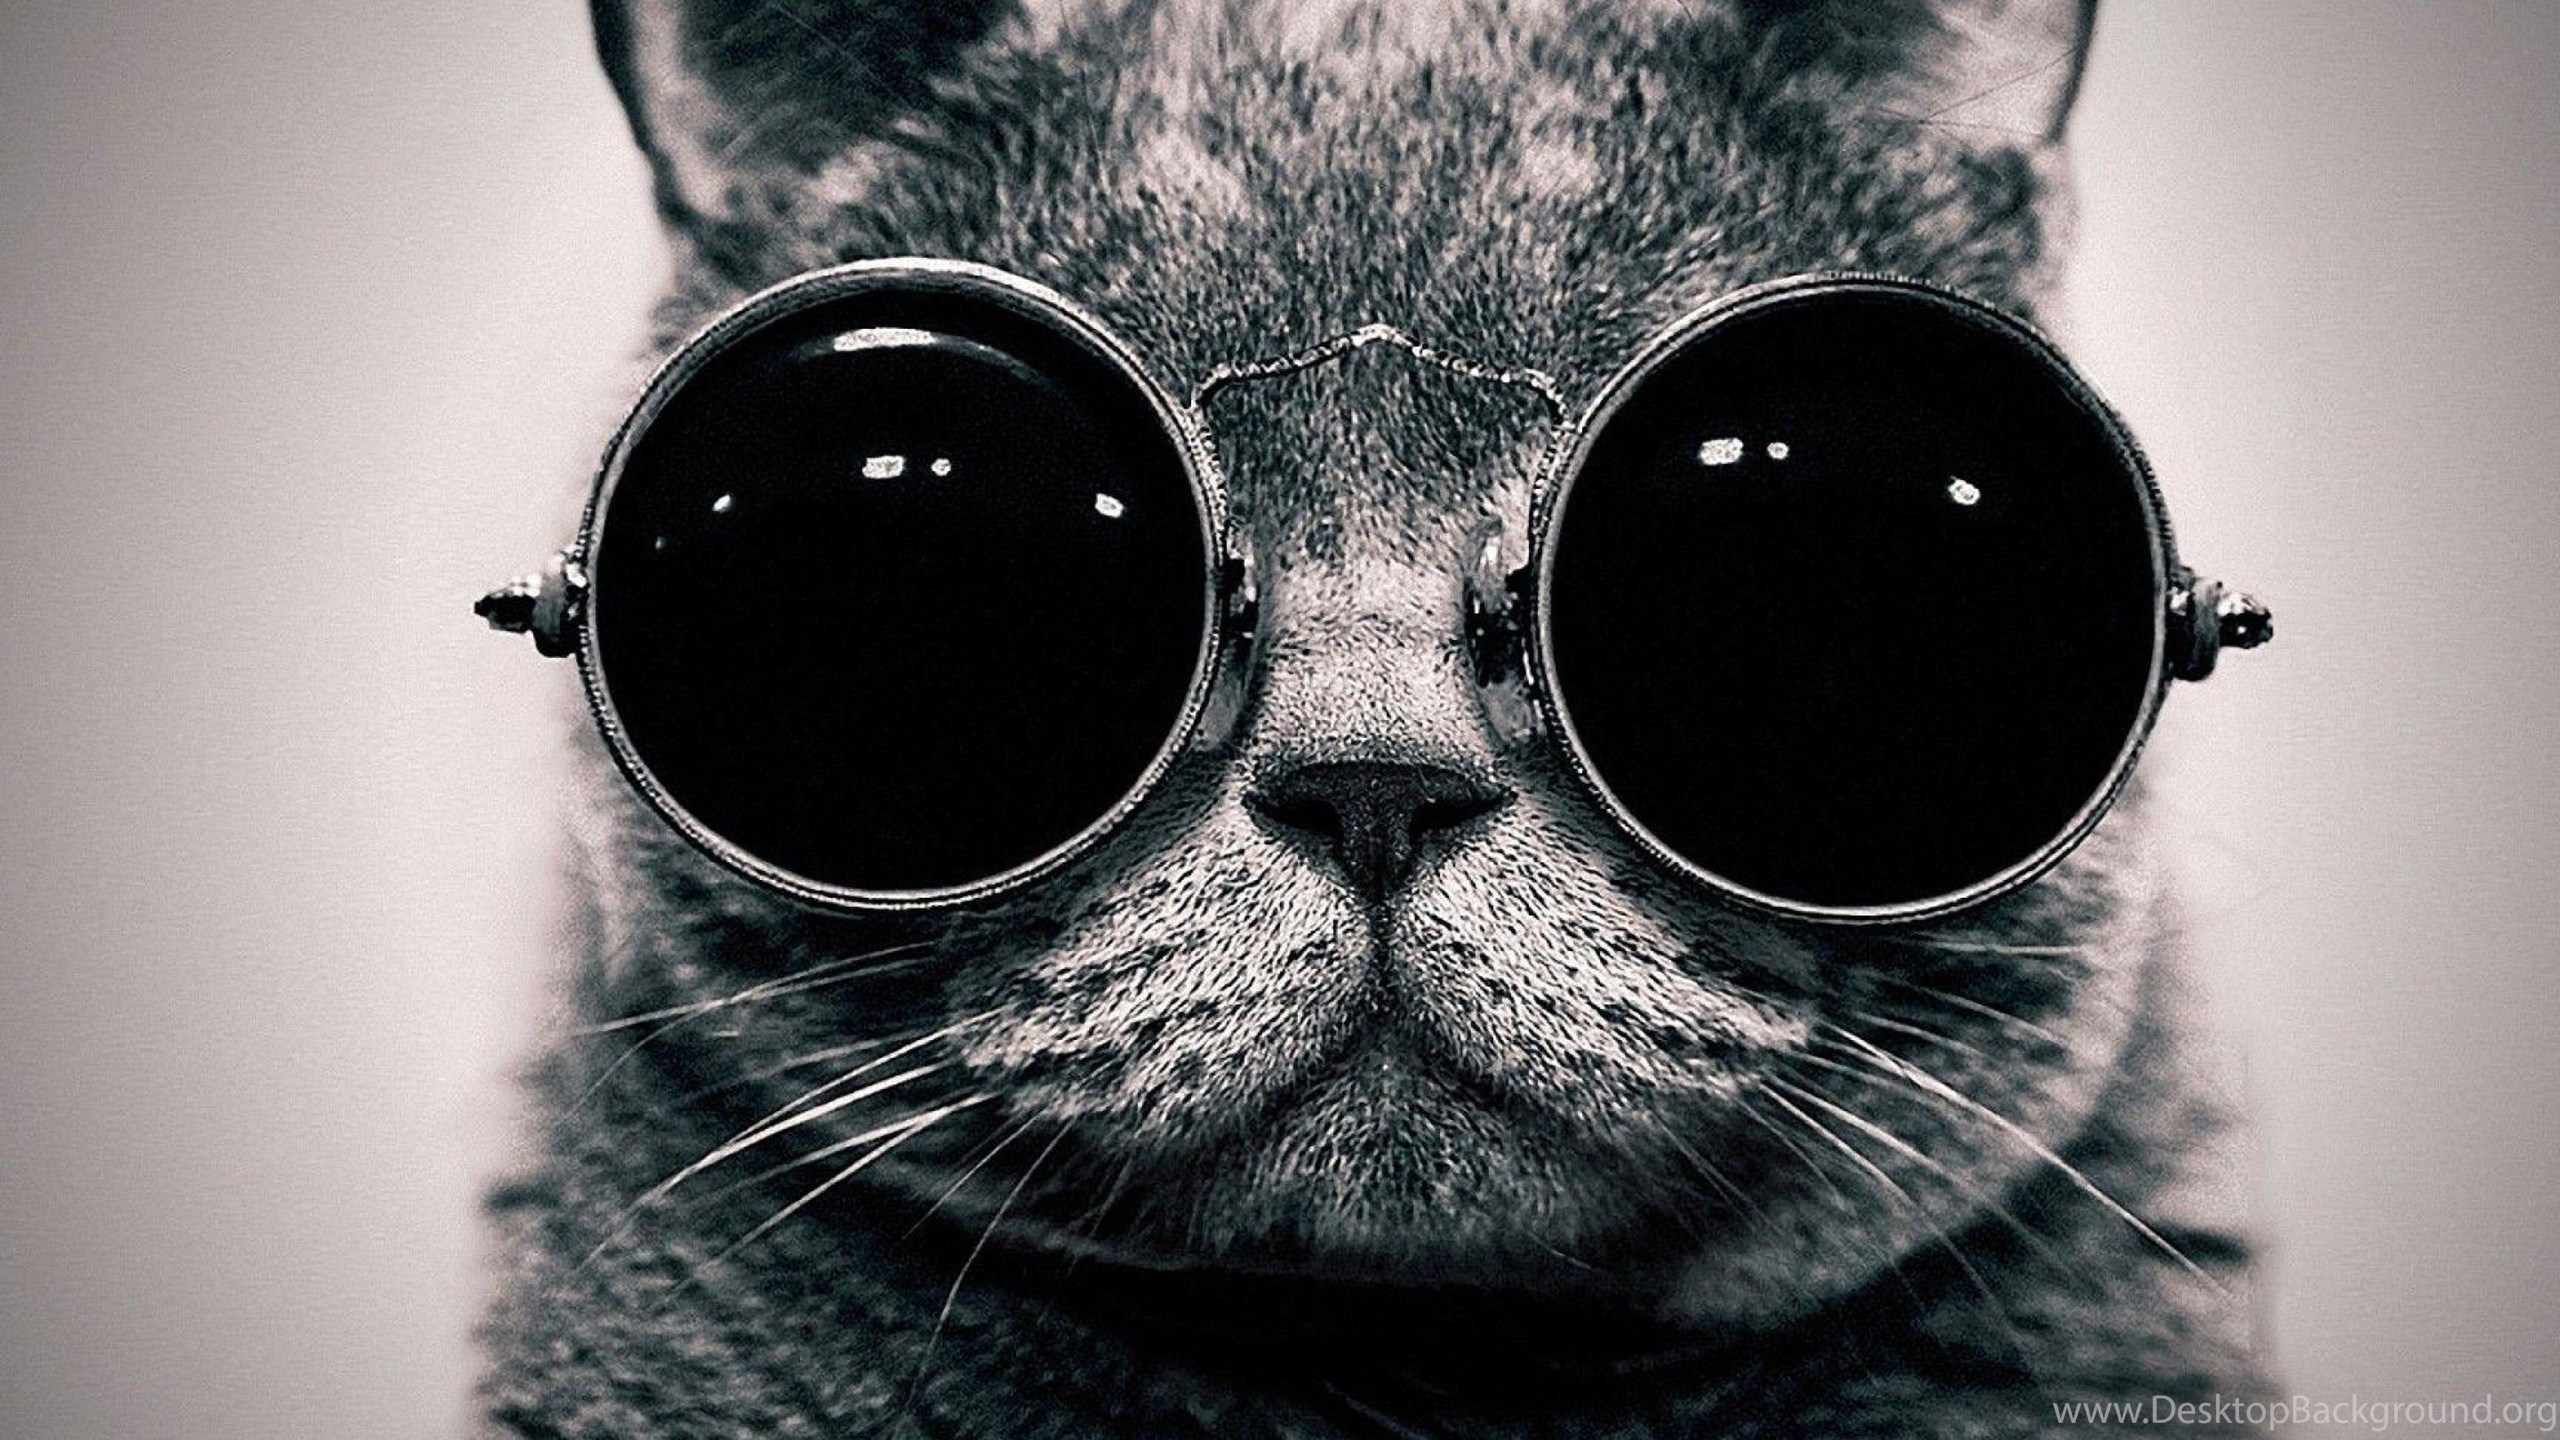 Funny Black Cat Uhd Wallpapers Ultra High Definition Wallpapers Desktop Background